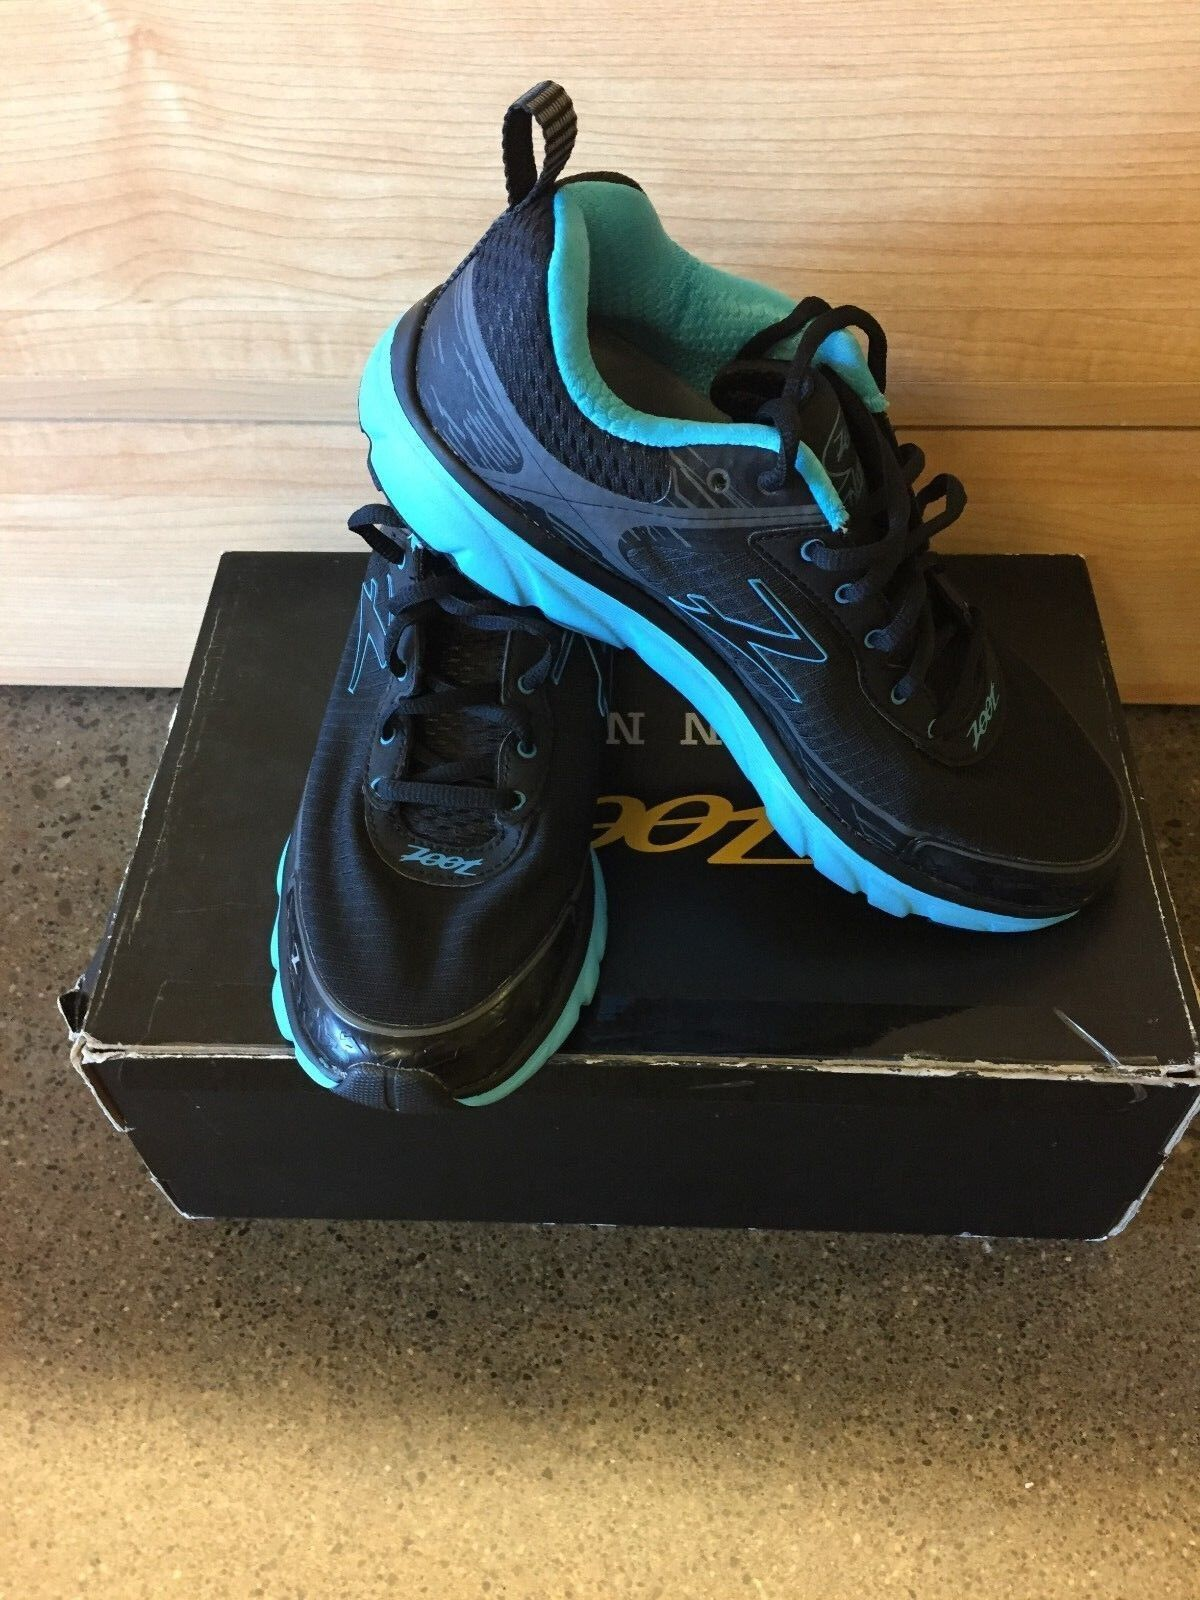 Zoot Solana ACR Running shoes, Women's Size 7.5 US  38.5EU   24JP   - NEW IN BOX